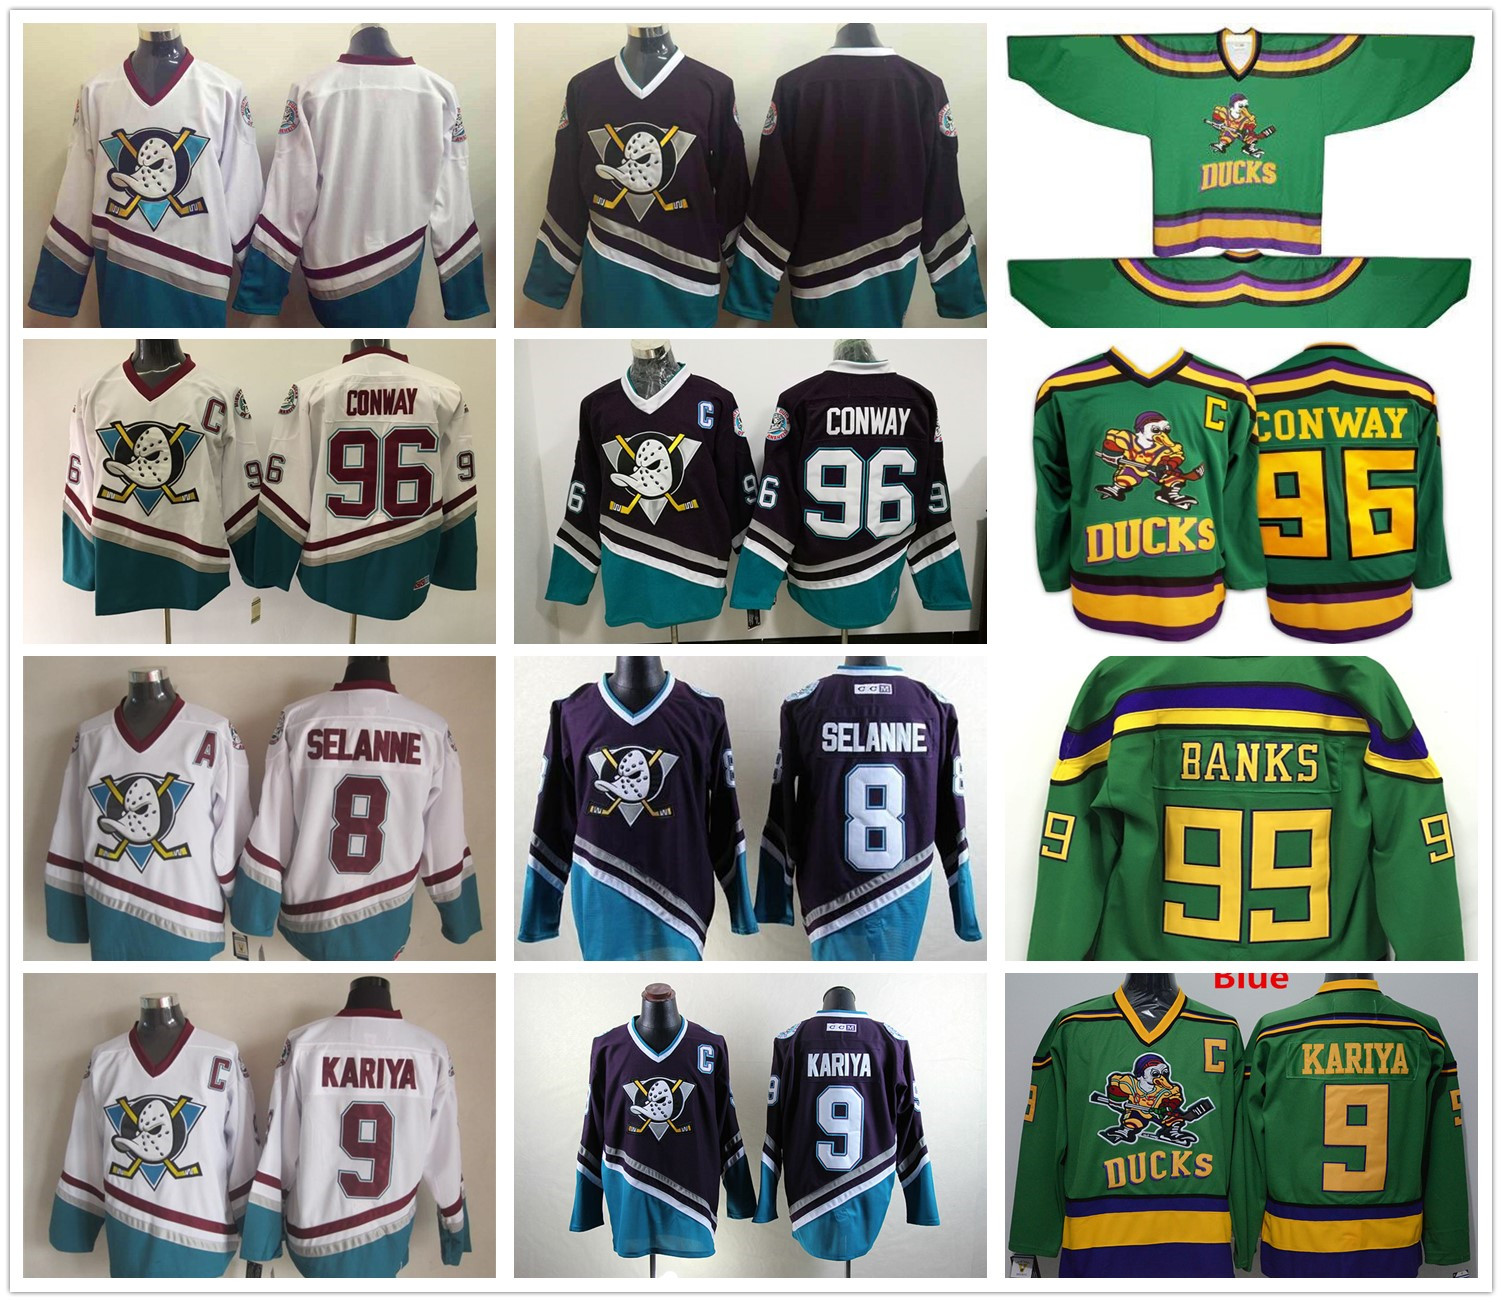 Charlie Conway # 66 Ice Hockey Sportswear Mighty Ducks Movie Ice Hockey Jersey Hip Hop Men Women Youth Clothing for Party Stitched Name Number